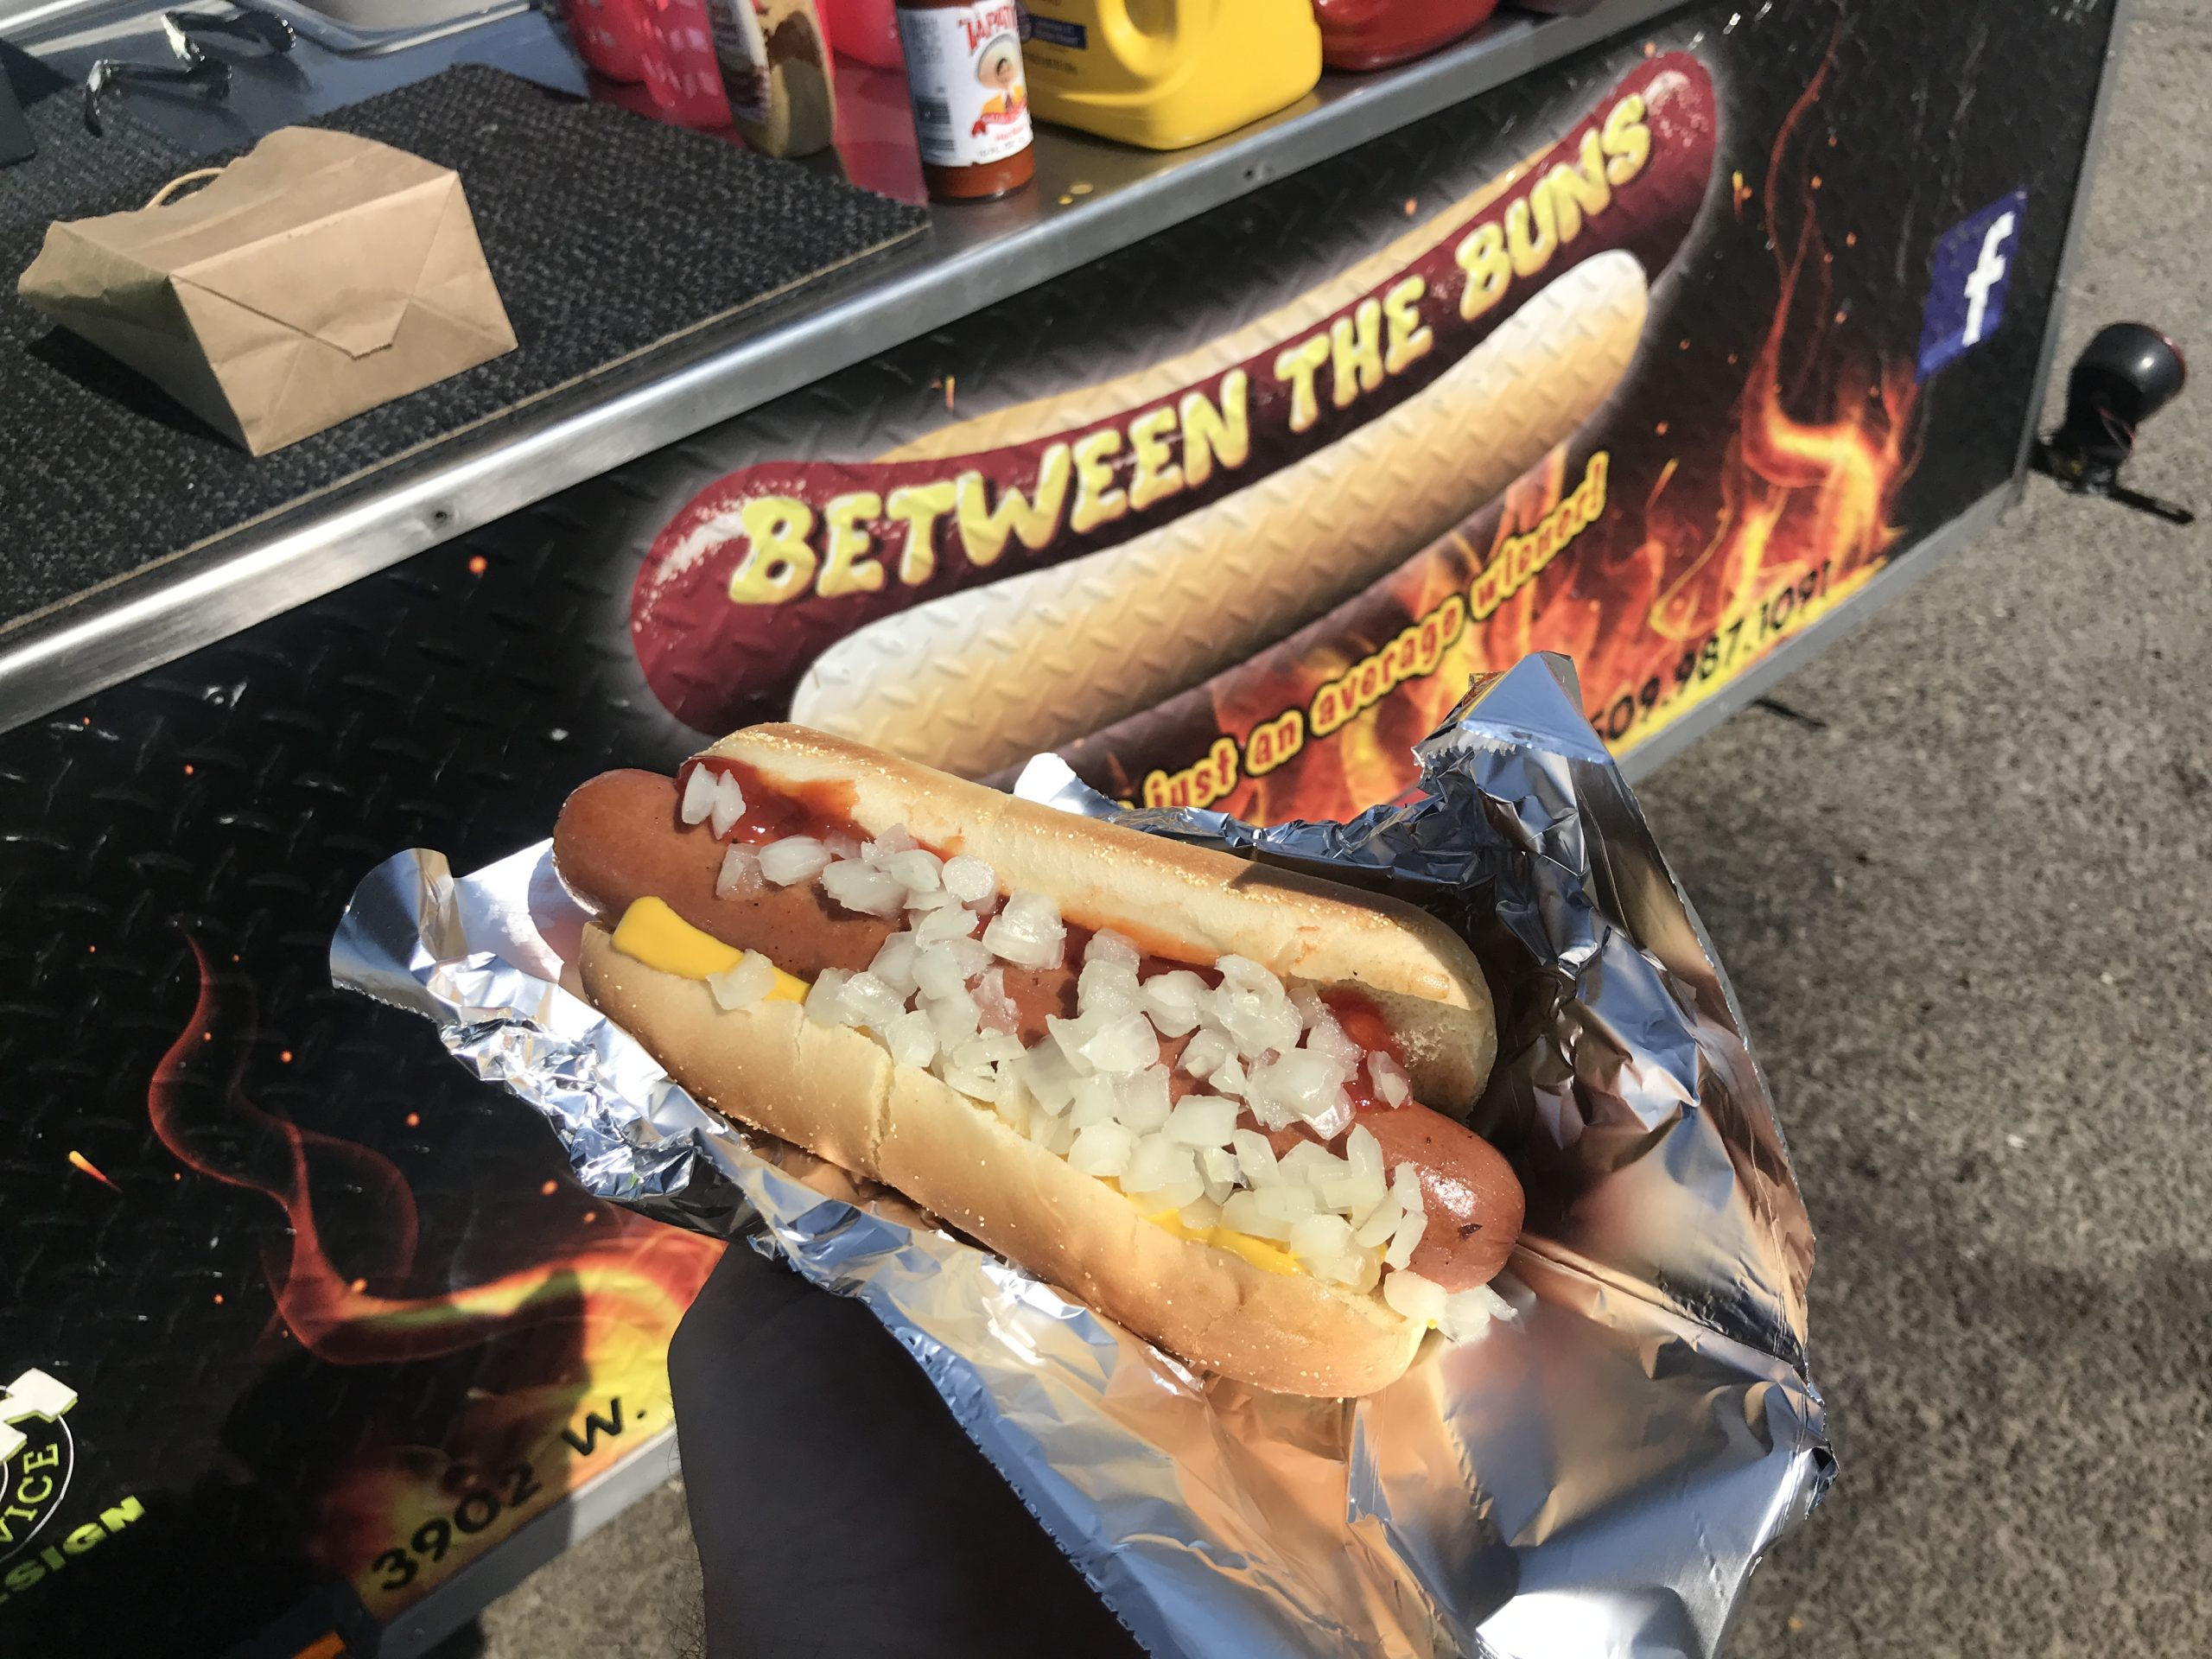 A Simply Great Hotdog from Between the Buns in Kennewick – September 1 2020